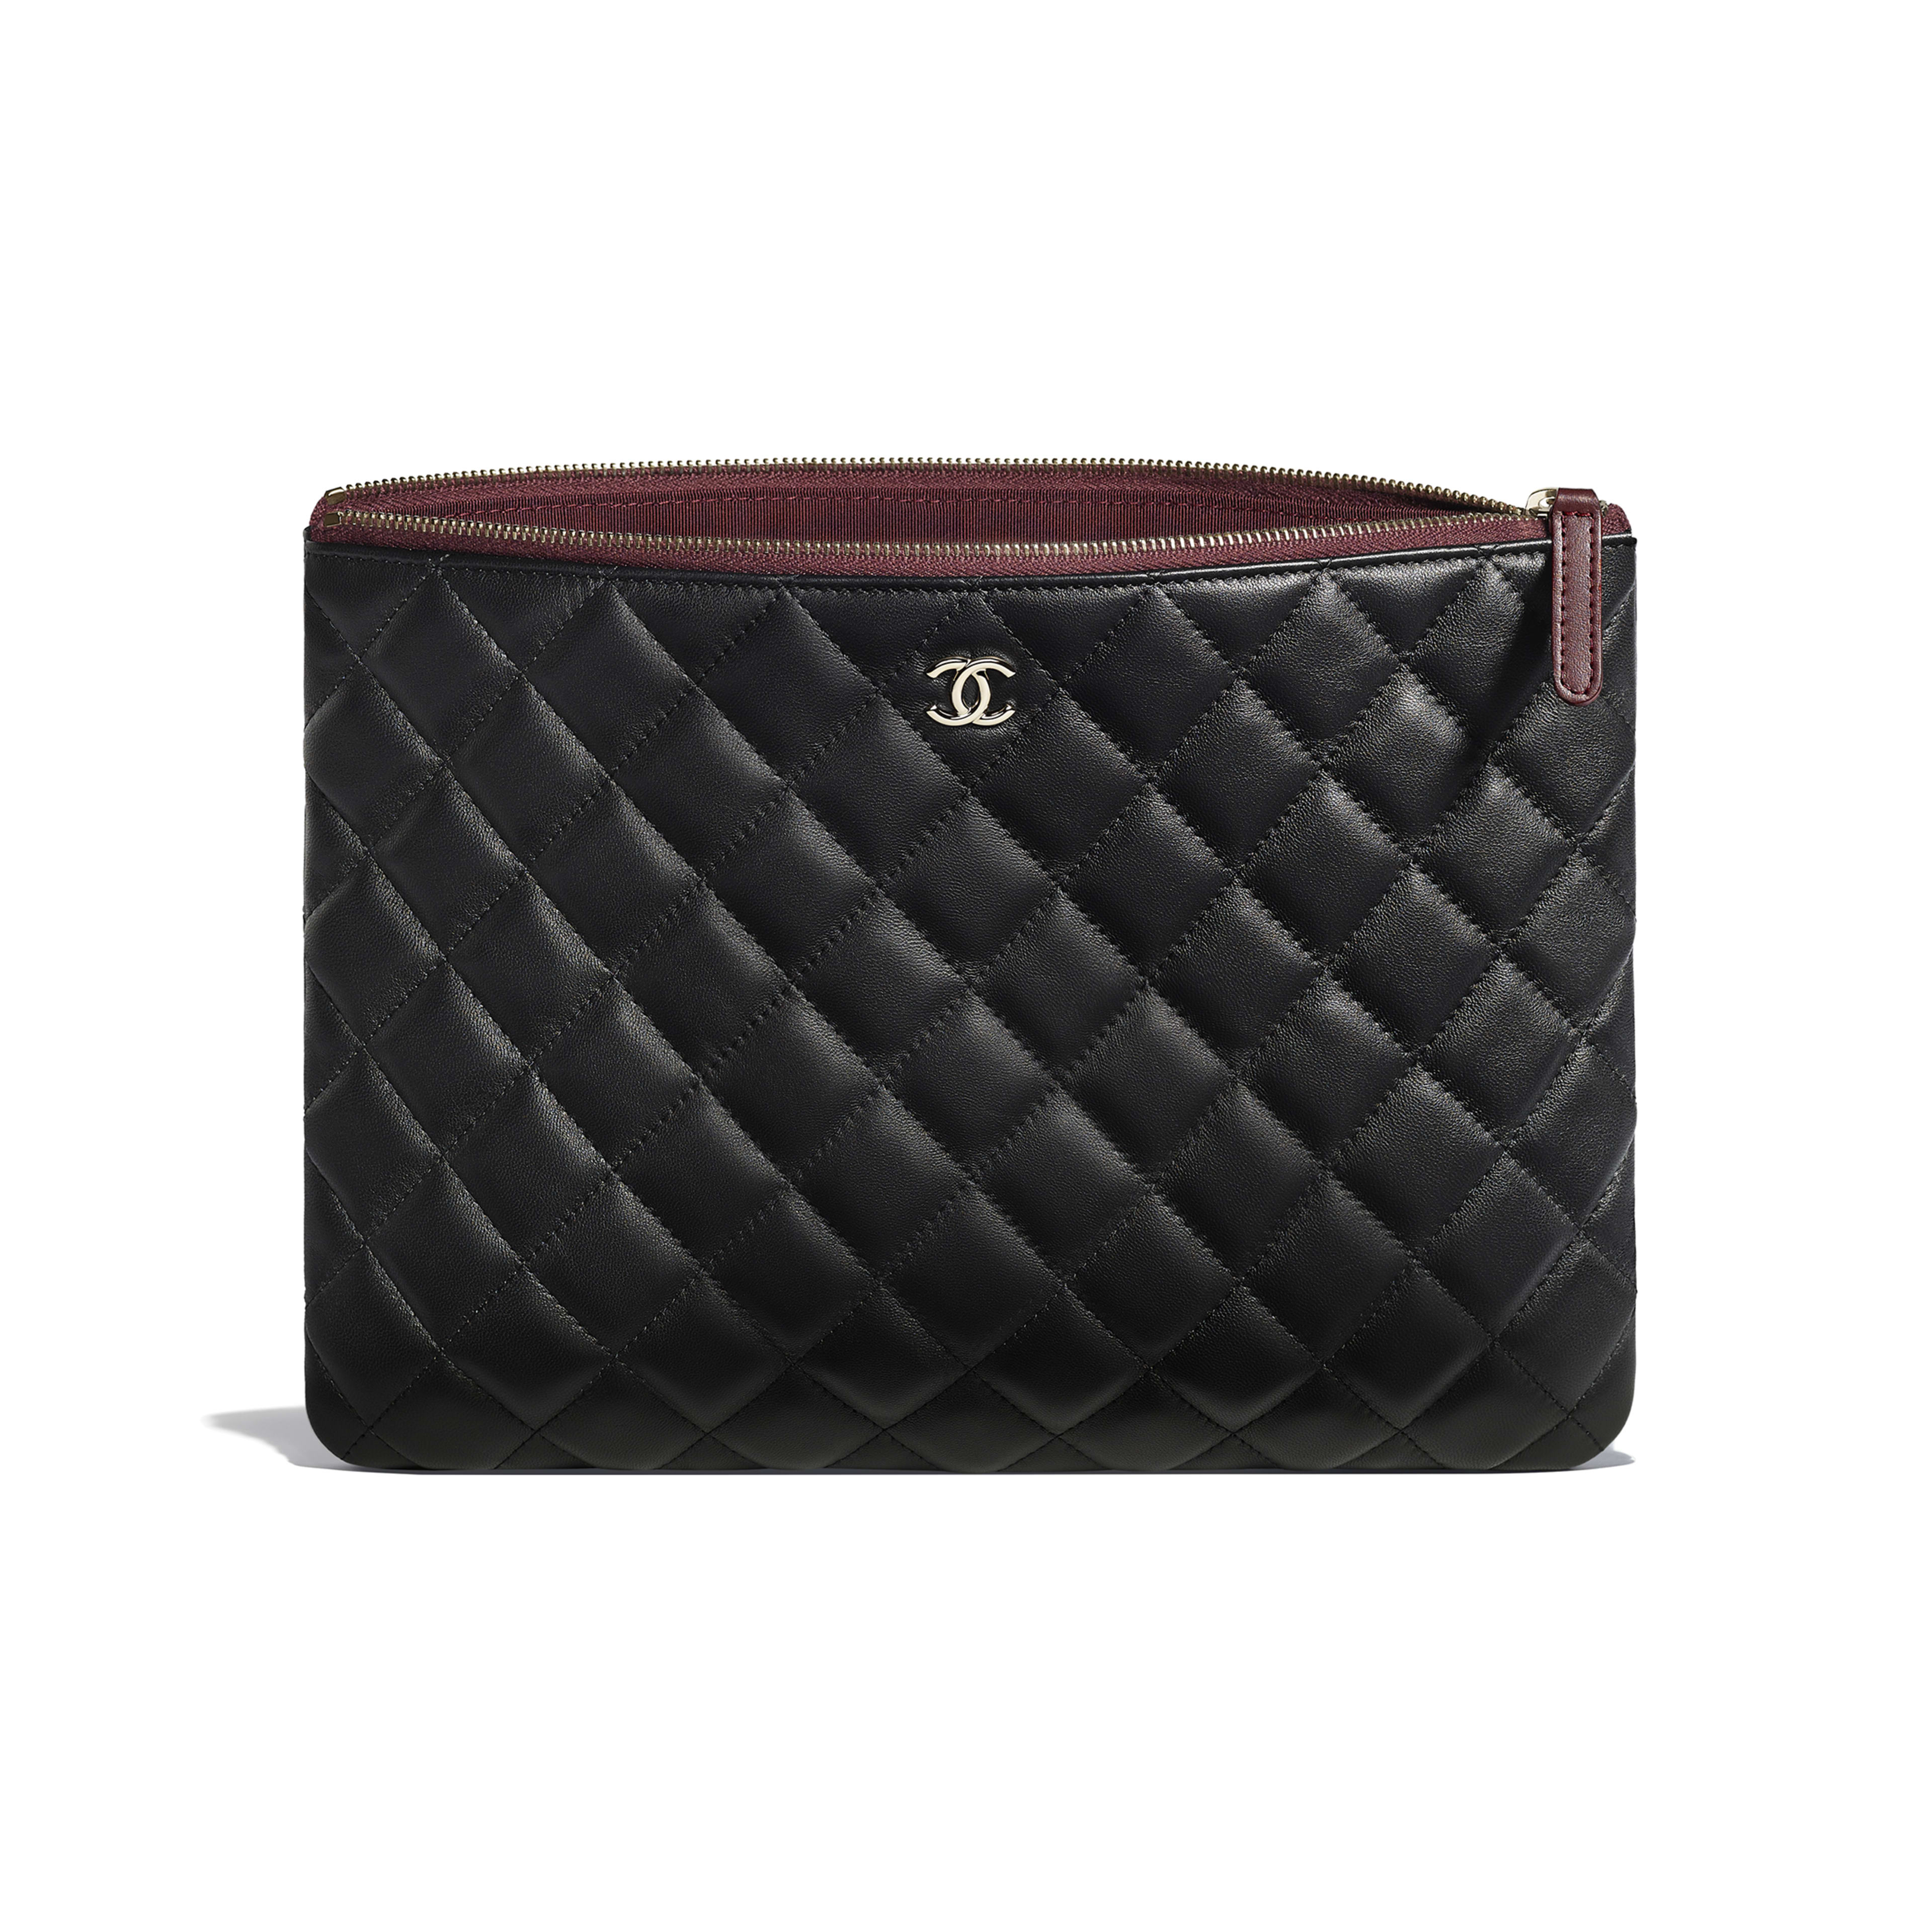 Classic Pouch - Black - Lambskin - Other view - see full sized version